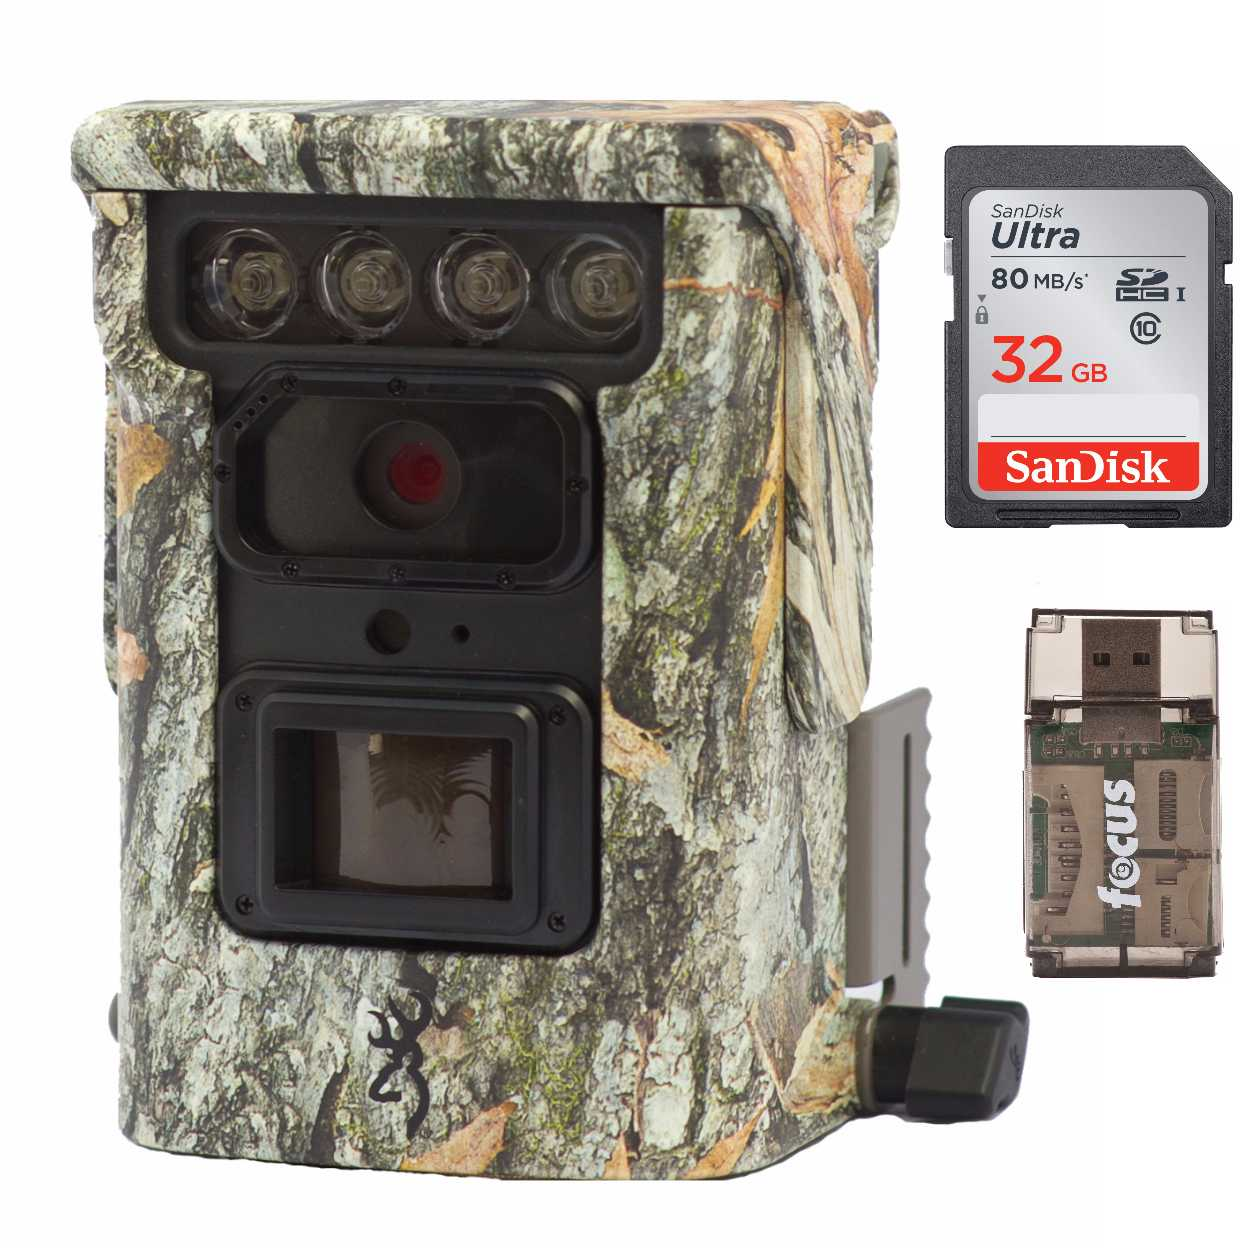 Browning Defender 850 Trail Camera (Camo) + SanDisk Ultra 32GB Memory Card + Card Reader by Browning Trail Cameras